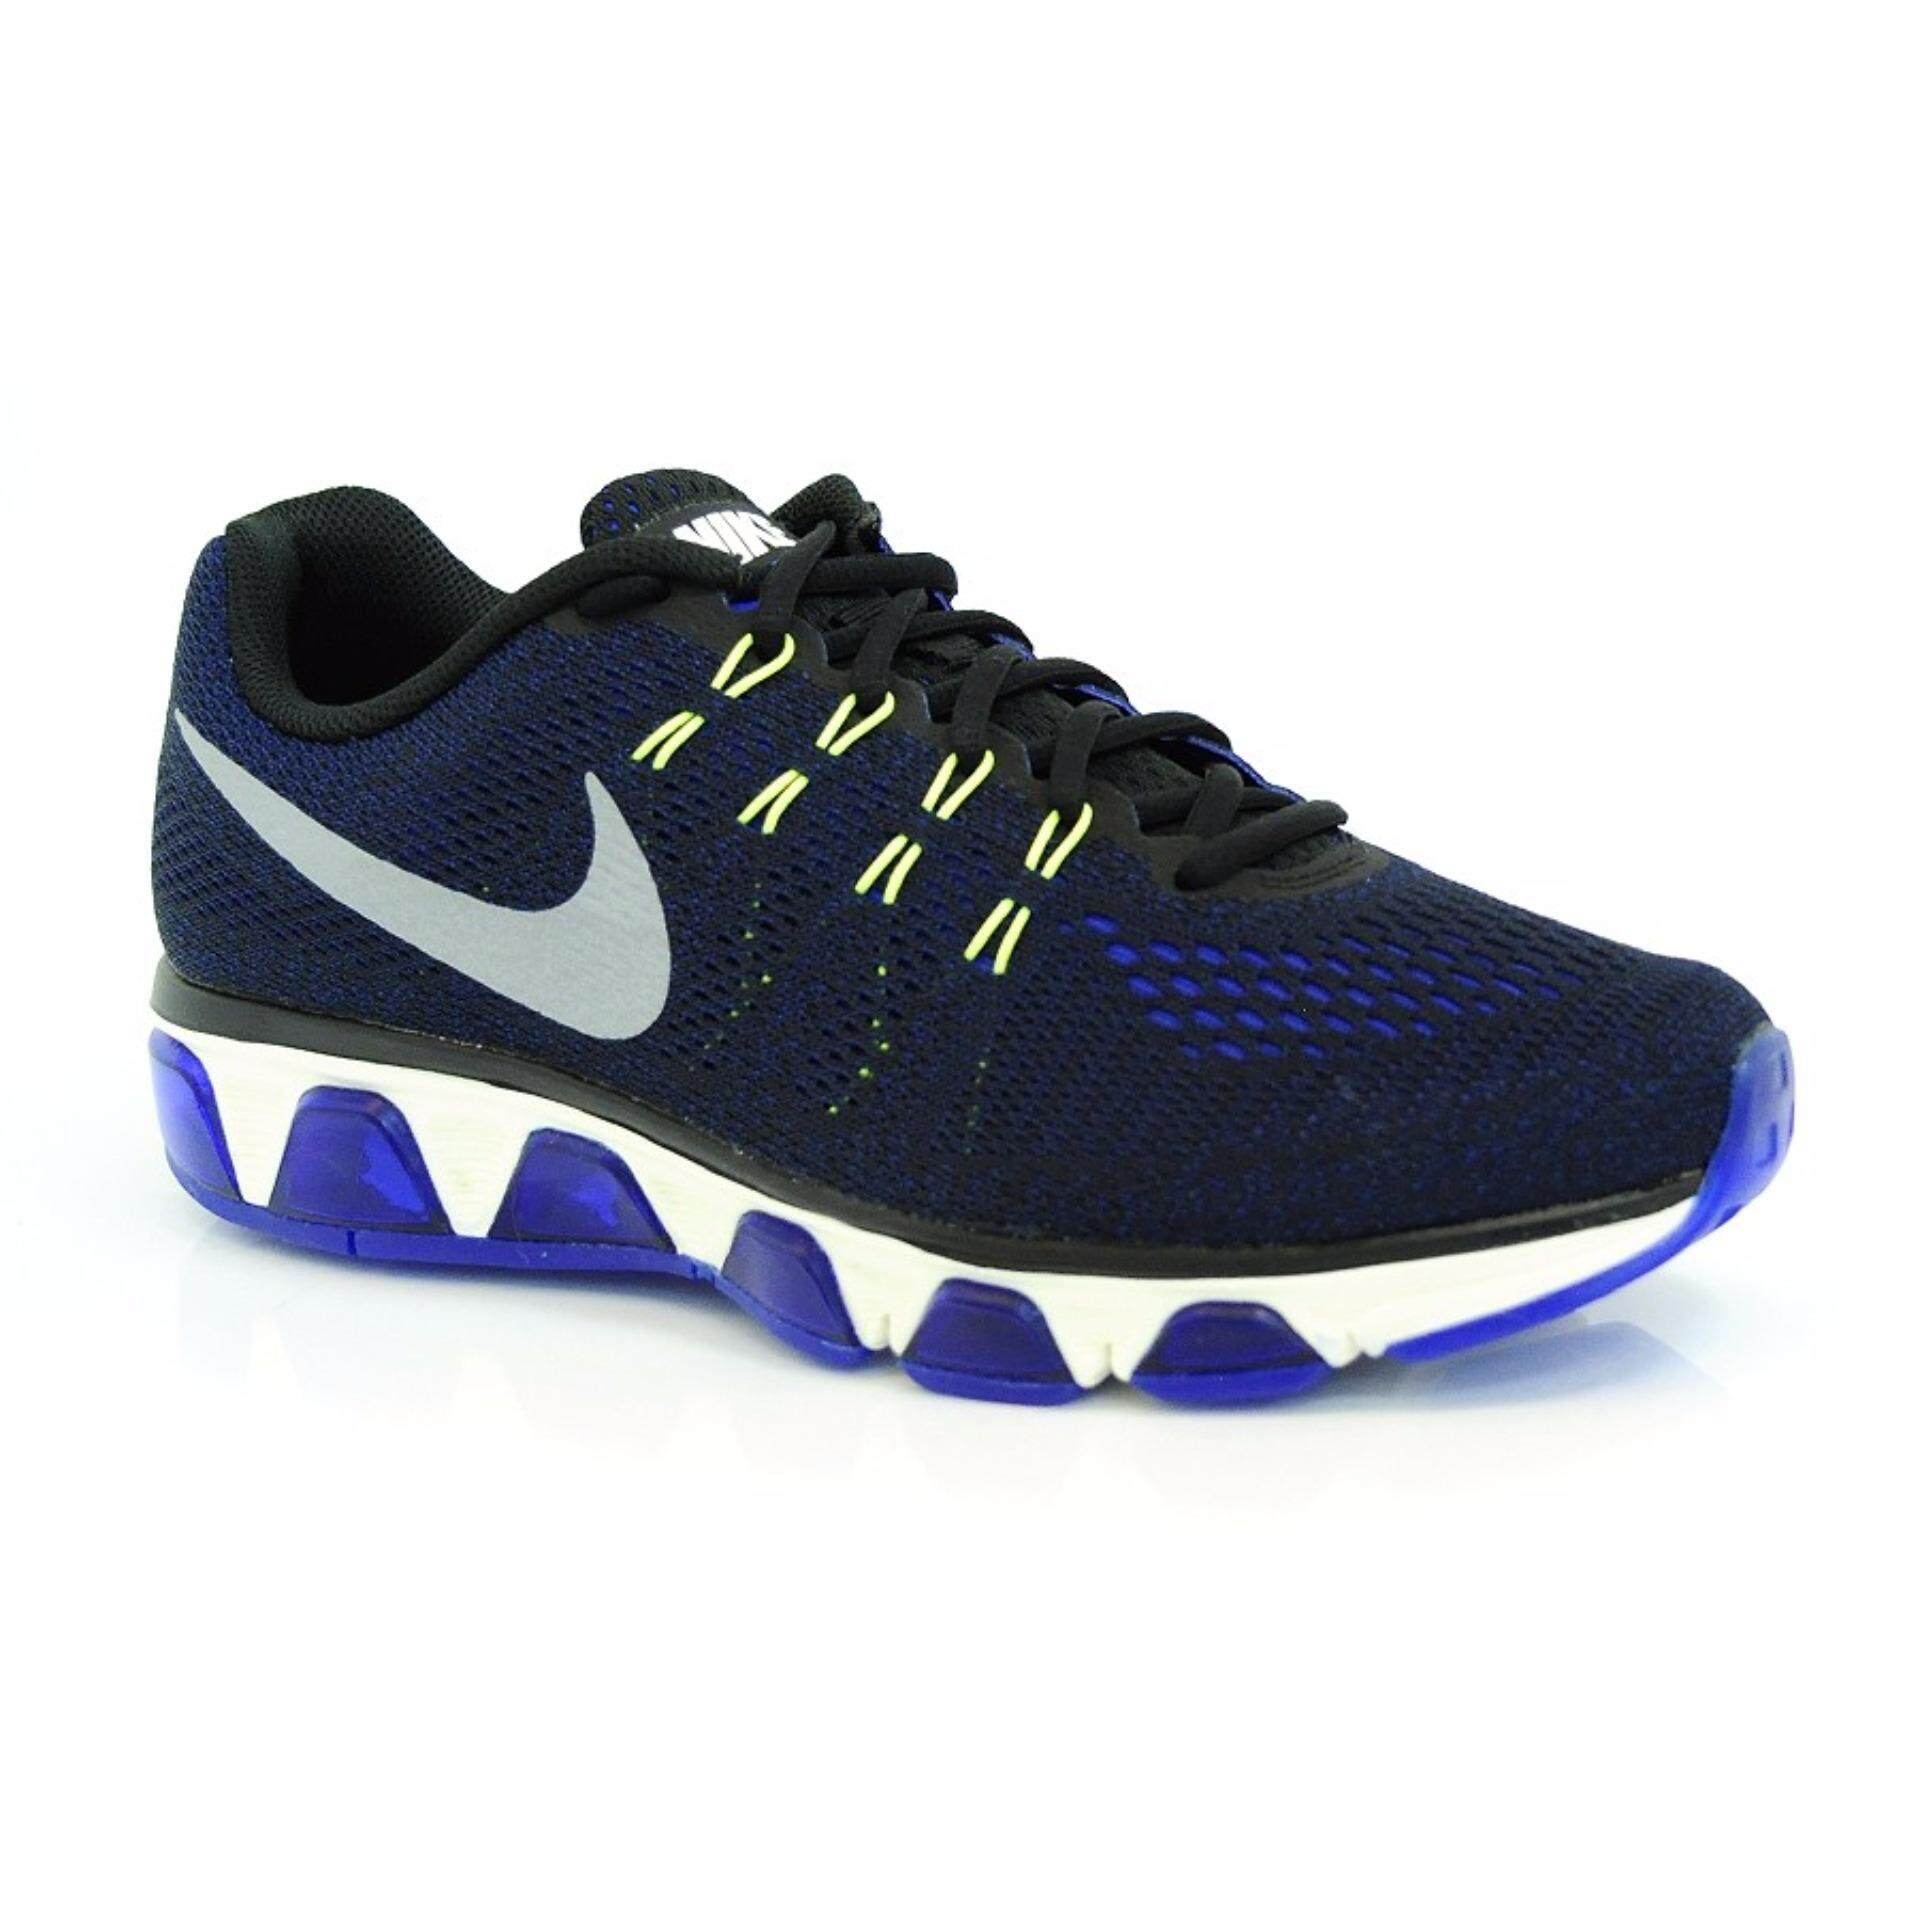 aed140c5af5b ... run  Nike Air Max Tailwind 8 Shoes 805941-004